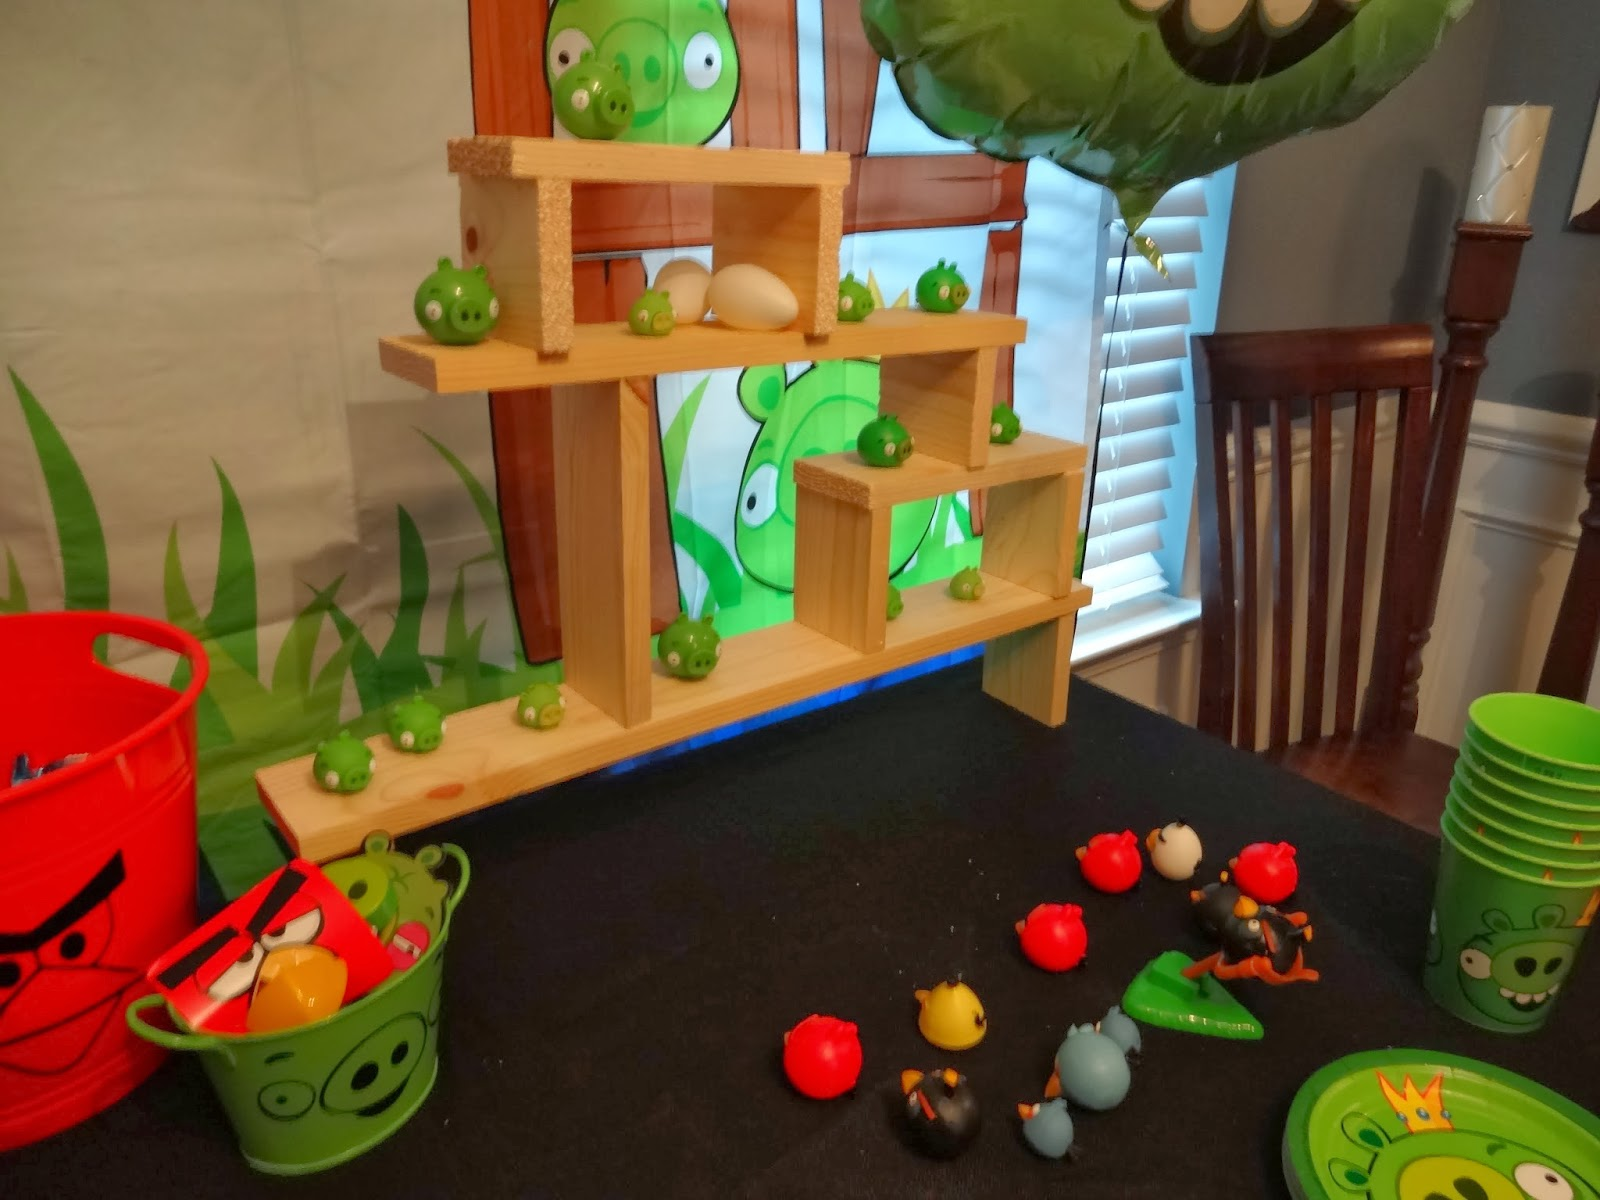 wood cut to be a larger angry bird game set up